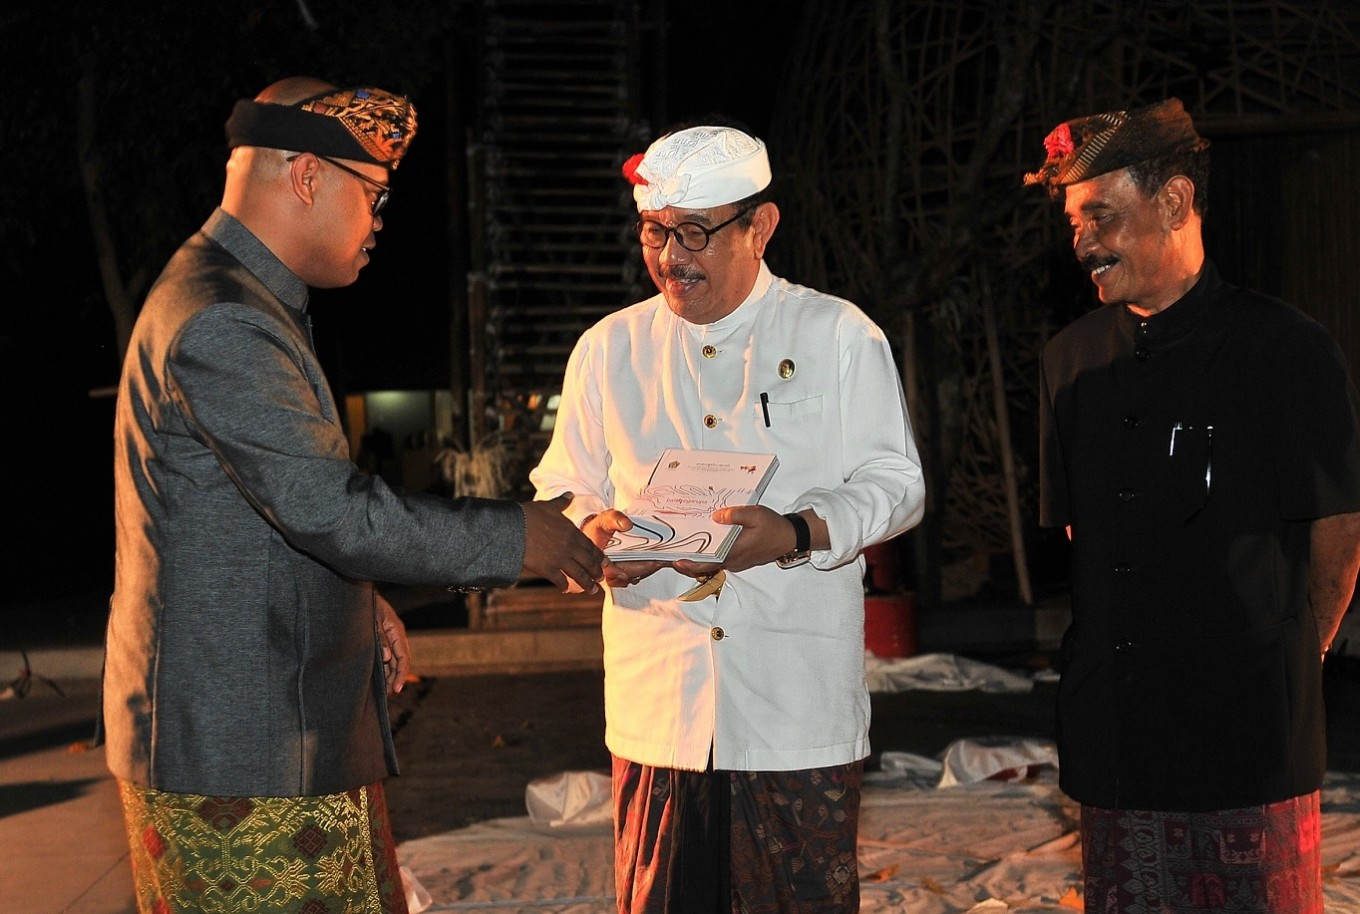 During the opening ceremony of Bali Megarupa on Oct. 10, at ARMA, Dr Wayan Kun Adnyana presents the Bali Megarupa exhibition catalog to Bali Deputy Governor Cokorda Ace as ARMA founder Agung Rai looks on.